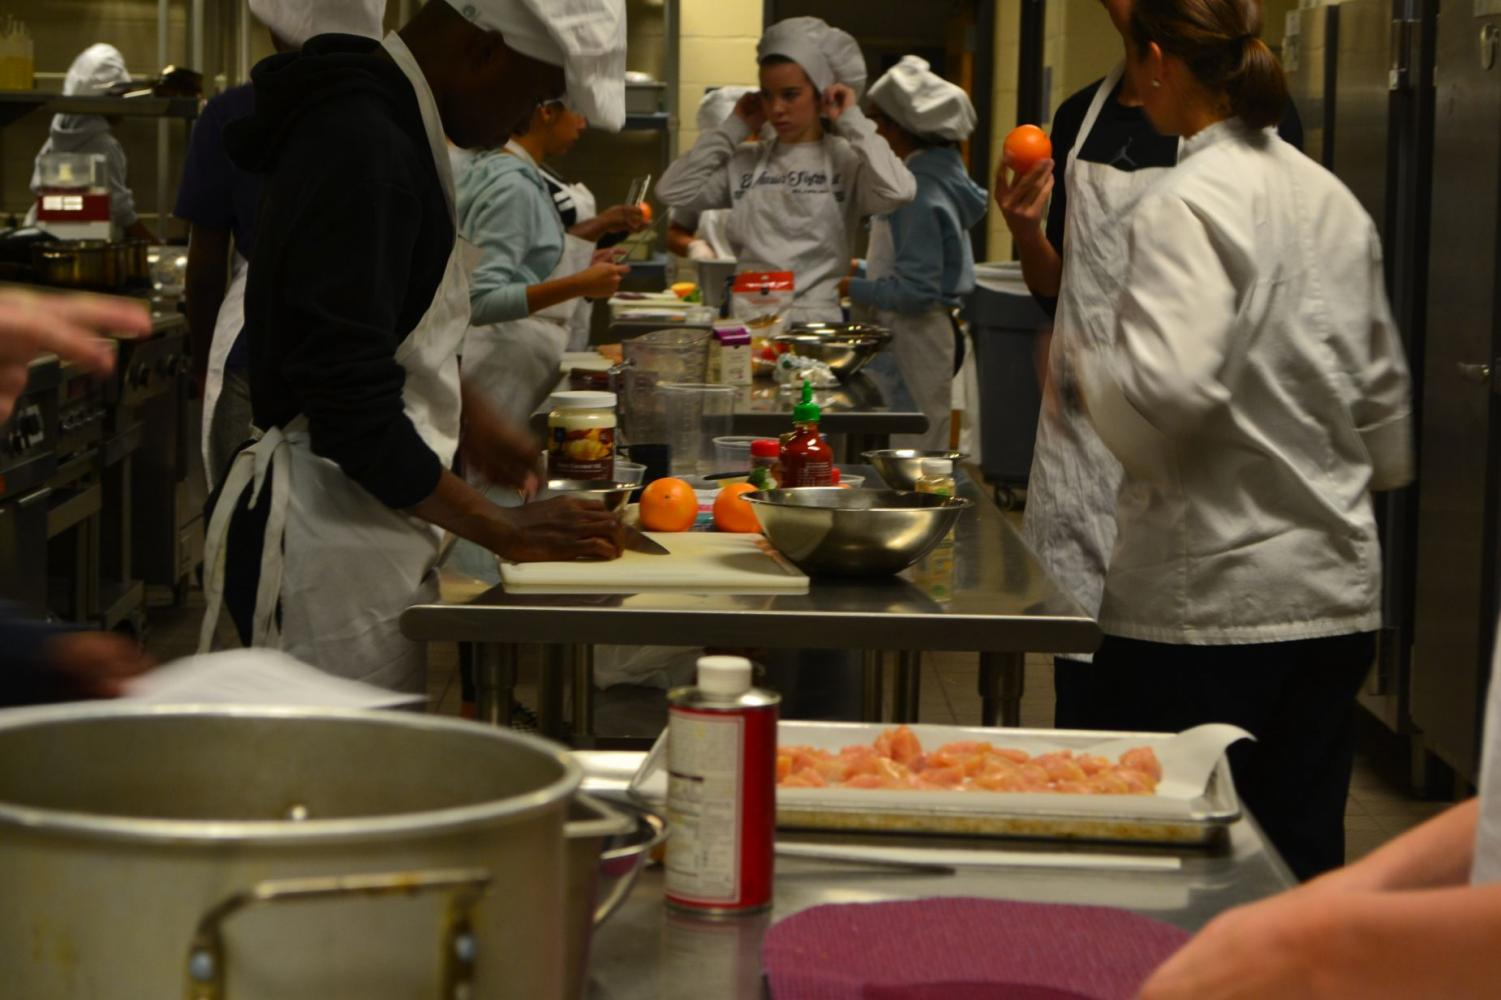 Incorporating orange, oats, sriracha, and chicken in their dishes, the students prepare the kitchen and find their recipes. This competition takes place every year and students love it. The competition encourages students to engage more in their work and focus more on the dishes.